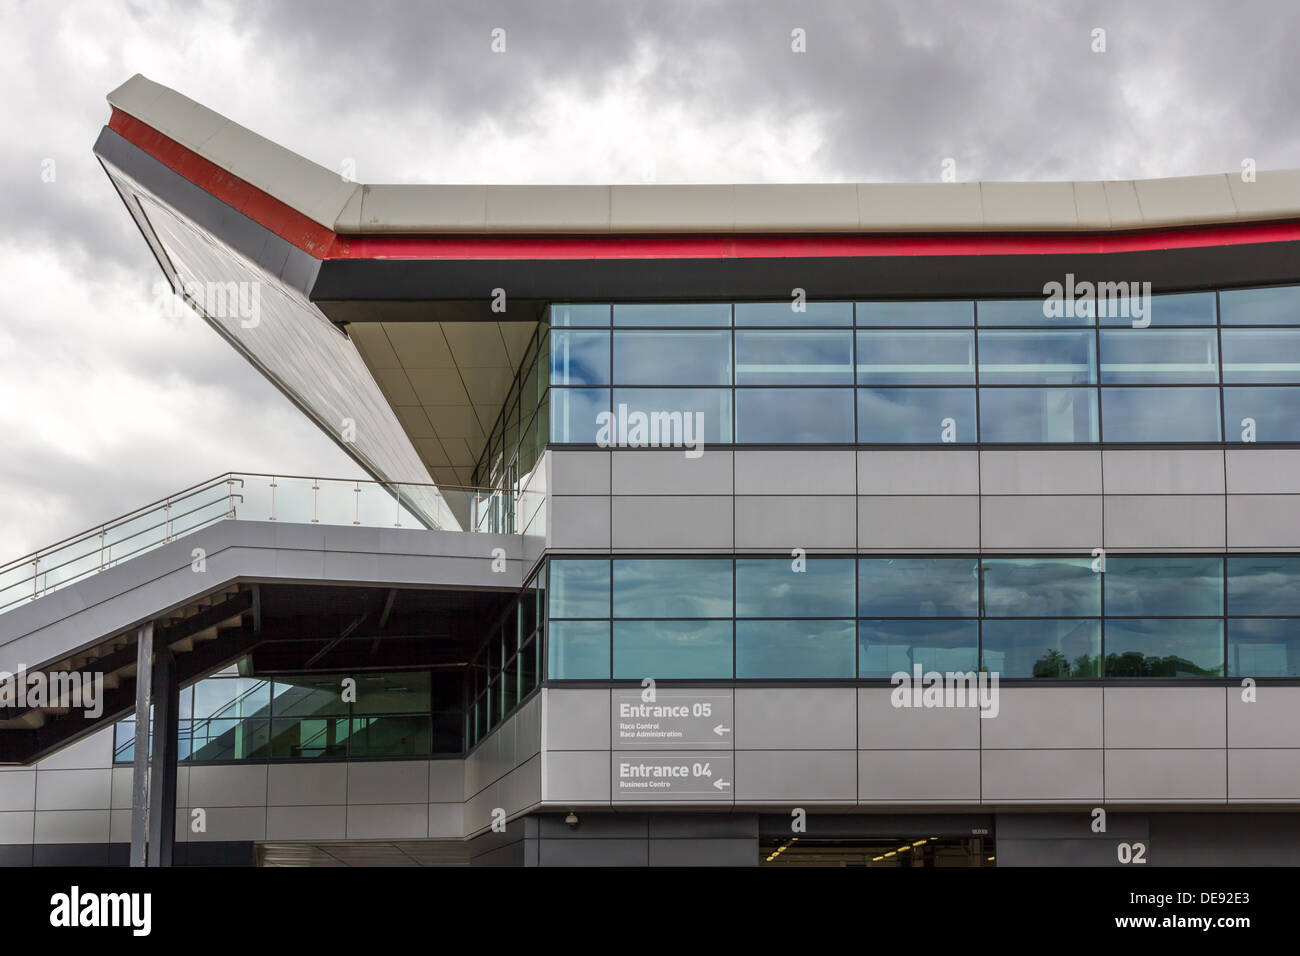 The Wing Pit Building at Silverstone Racing Circuit - Stock Image